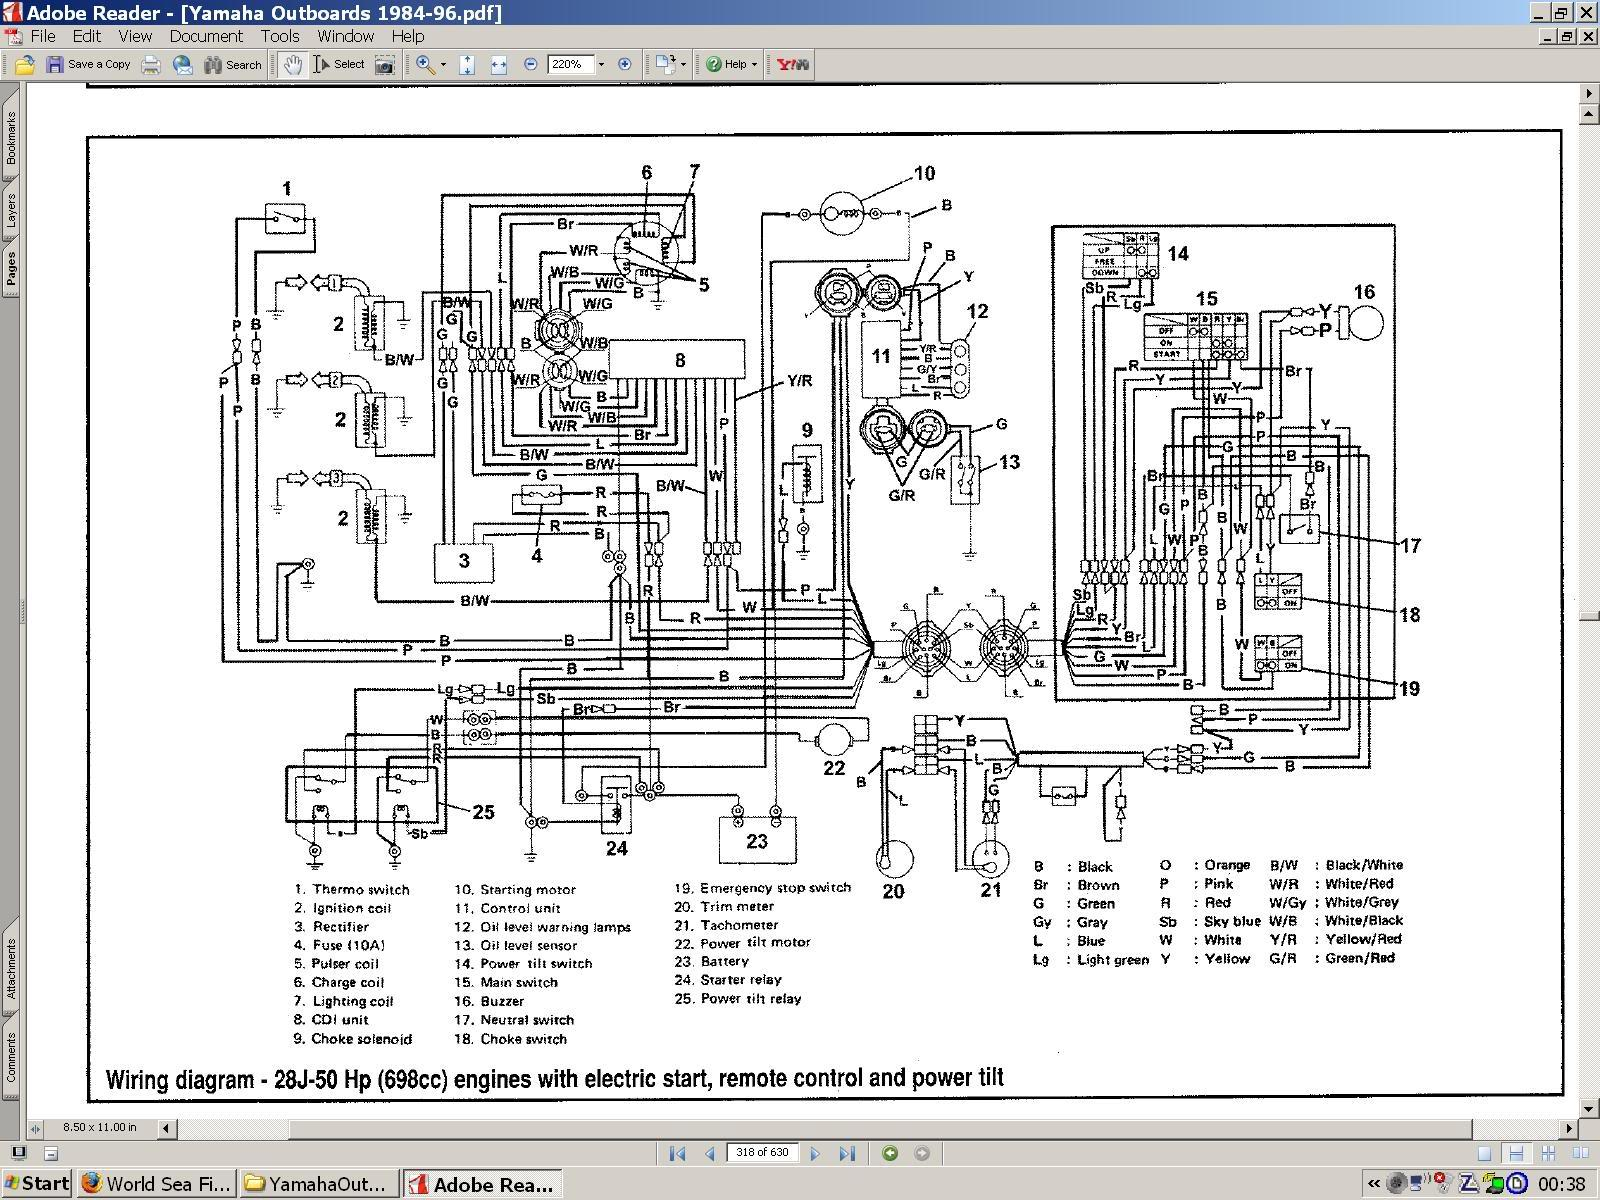 hight resolution of wiring diagram manual for yamaha 703 control ribnet forums wiring diagram manual for yamaha 703 control